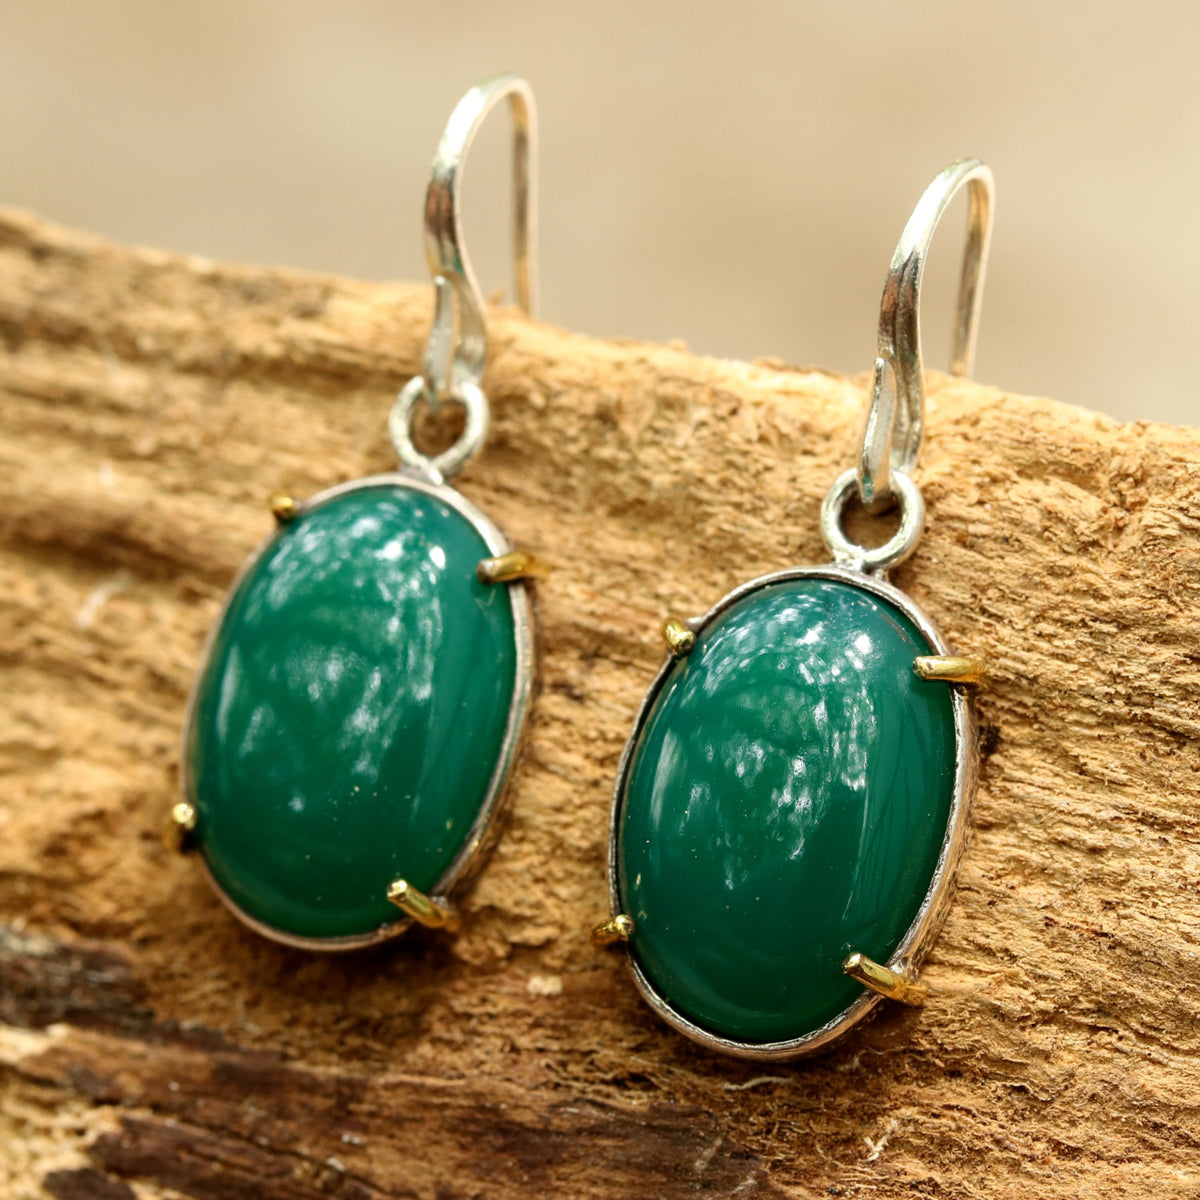 Green onyx cabochon earrings in silver bezel setting with polished brass accent prongs